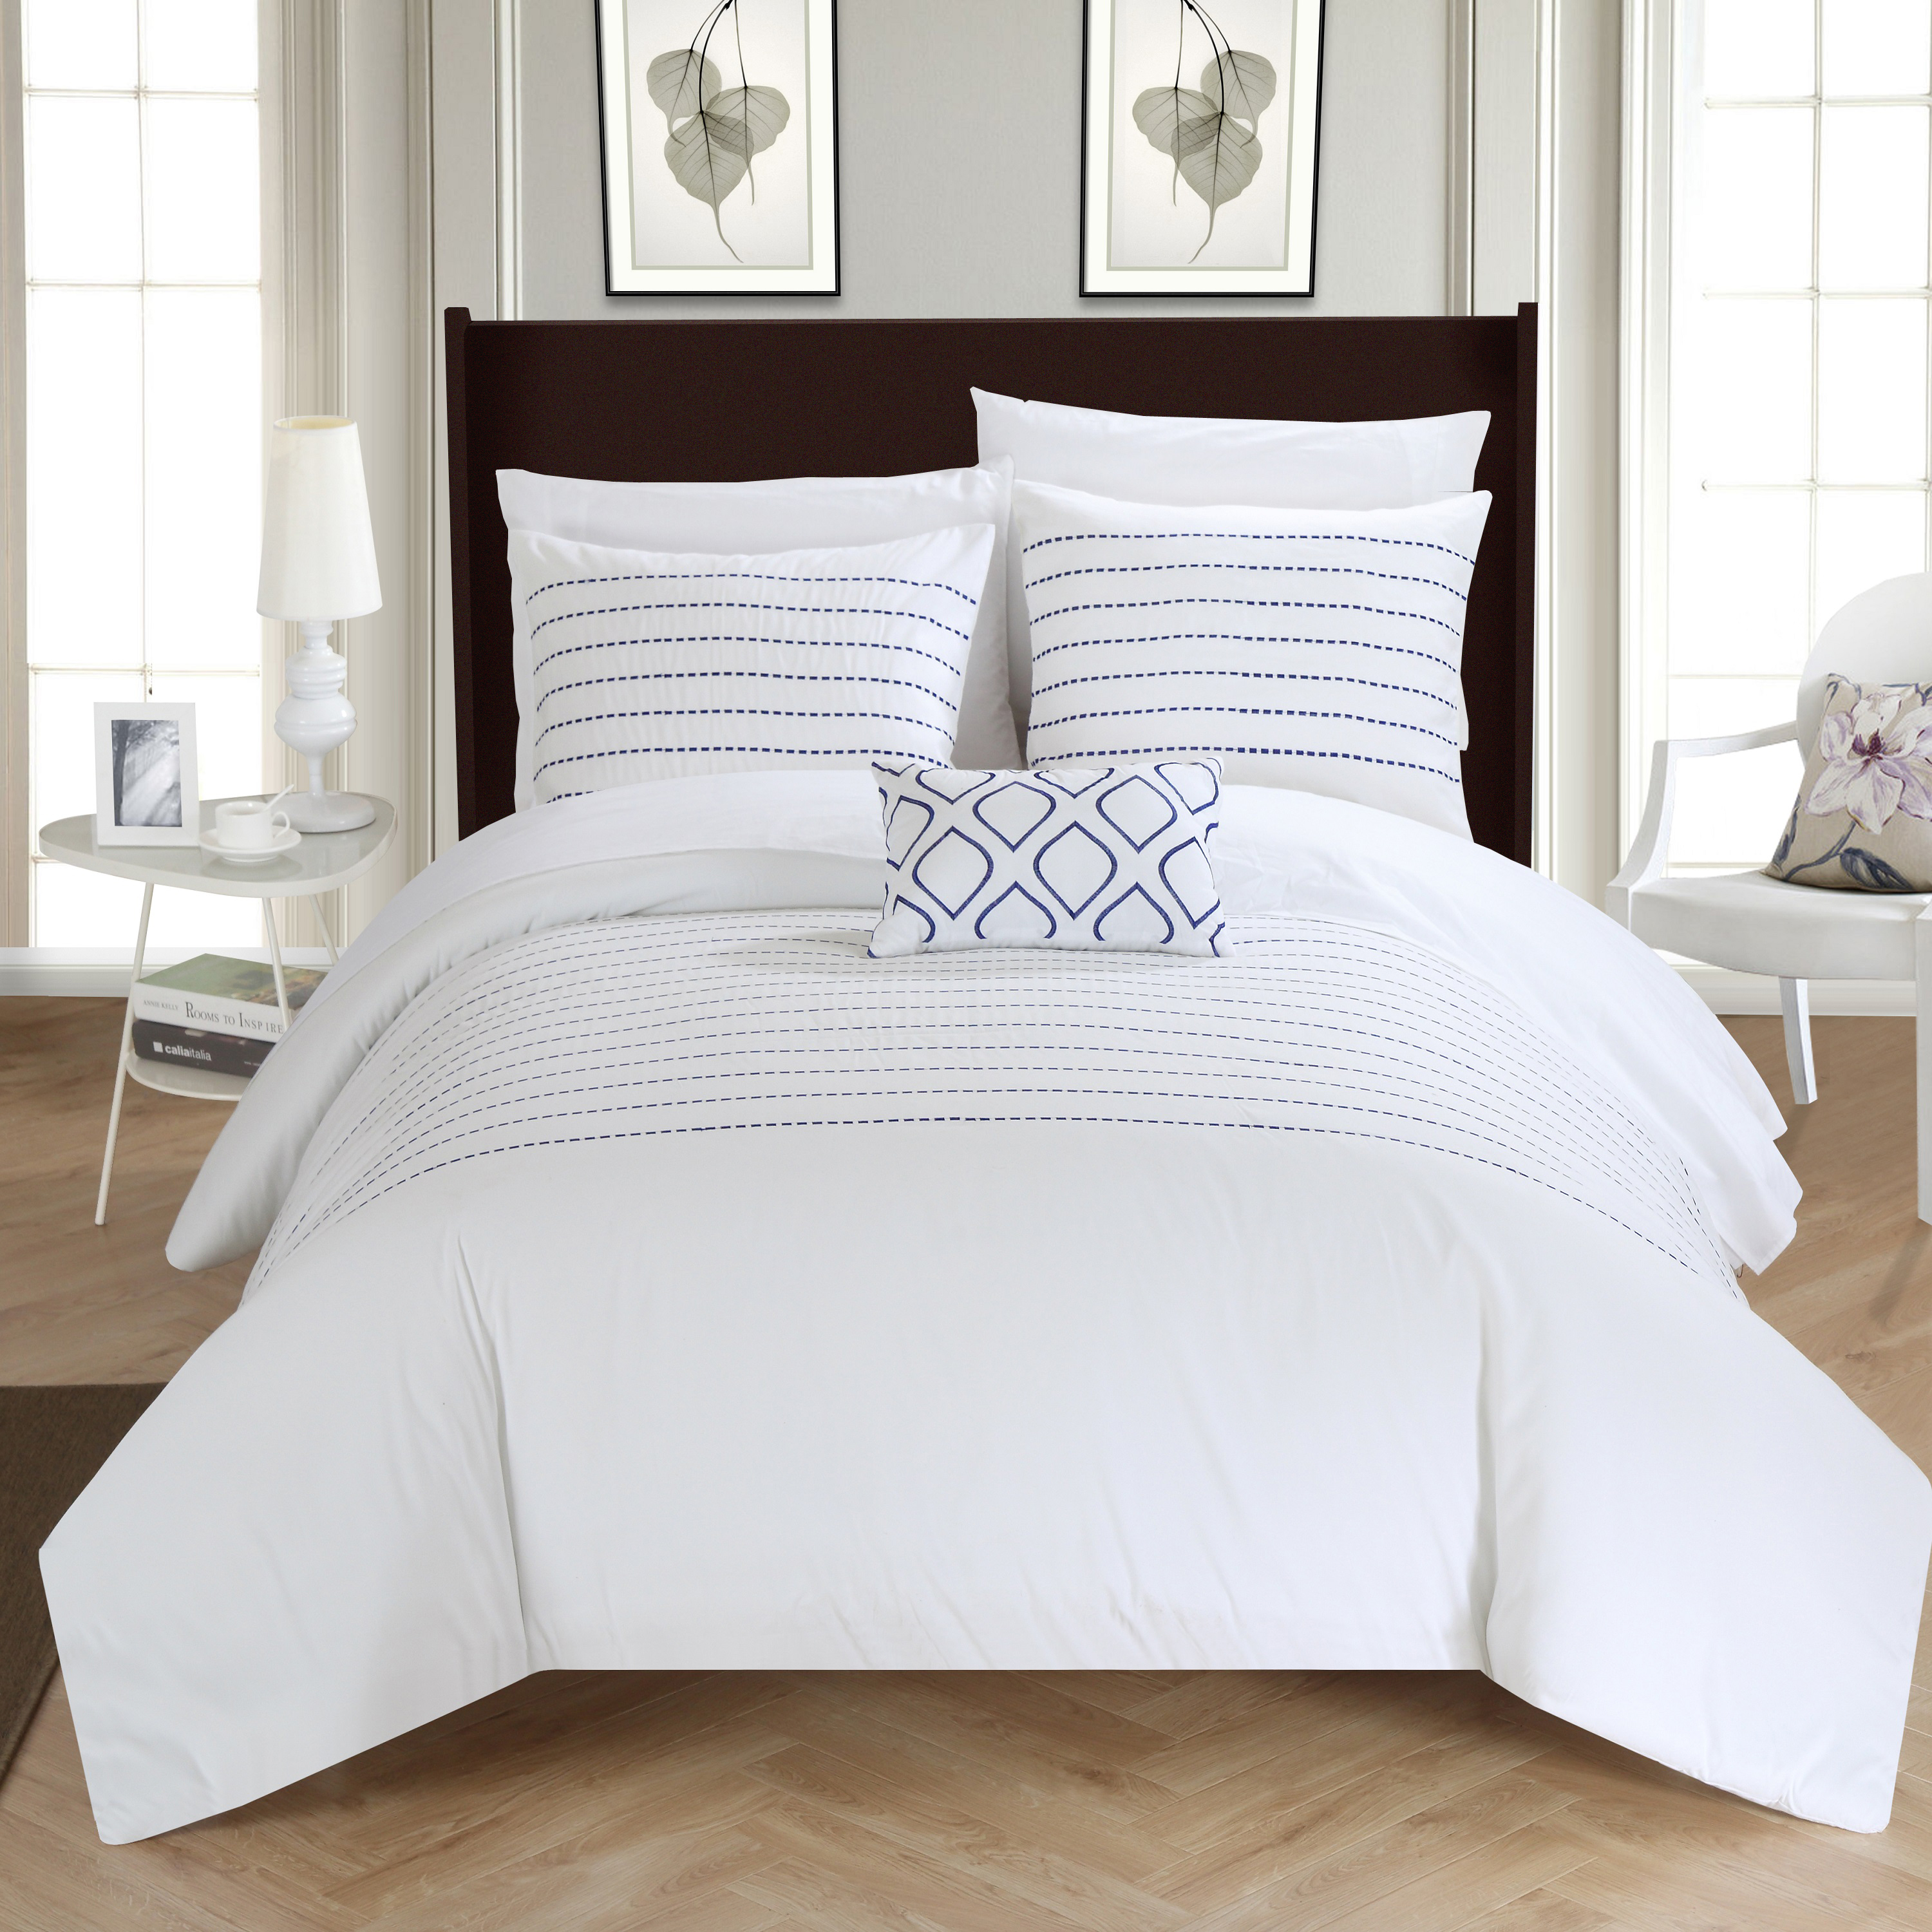 chic home 4piece kingston super soft microfiber stitch embroidered king duvet cover set white